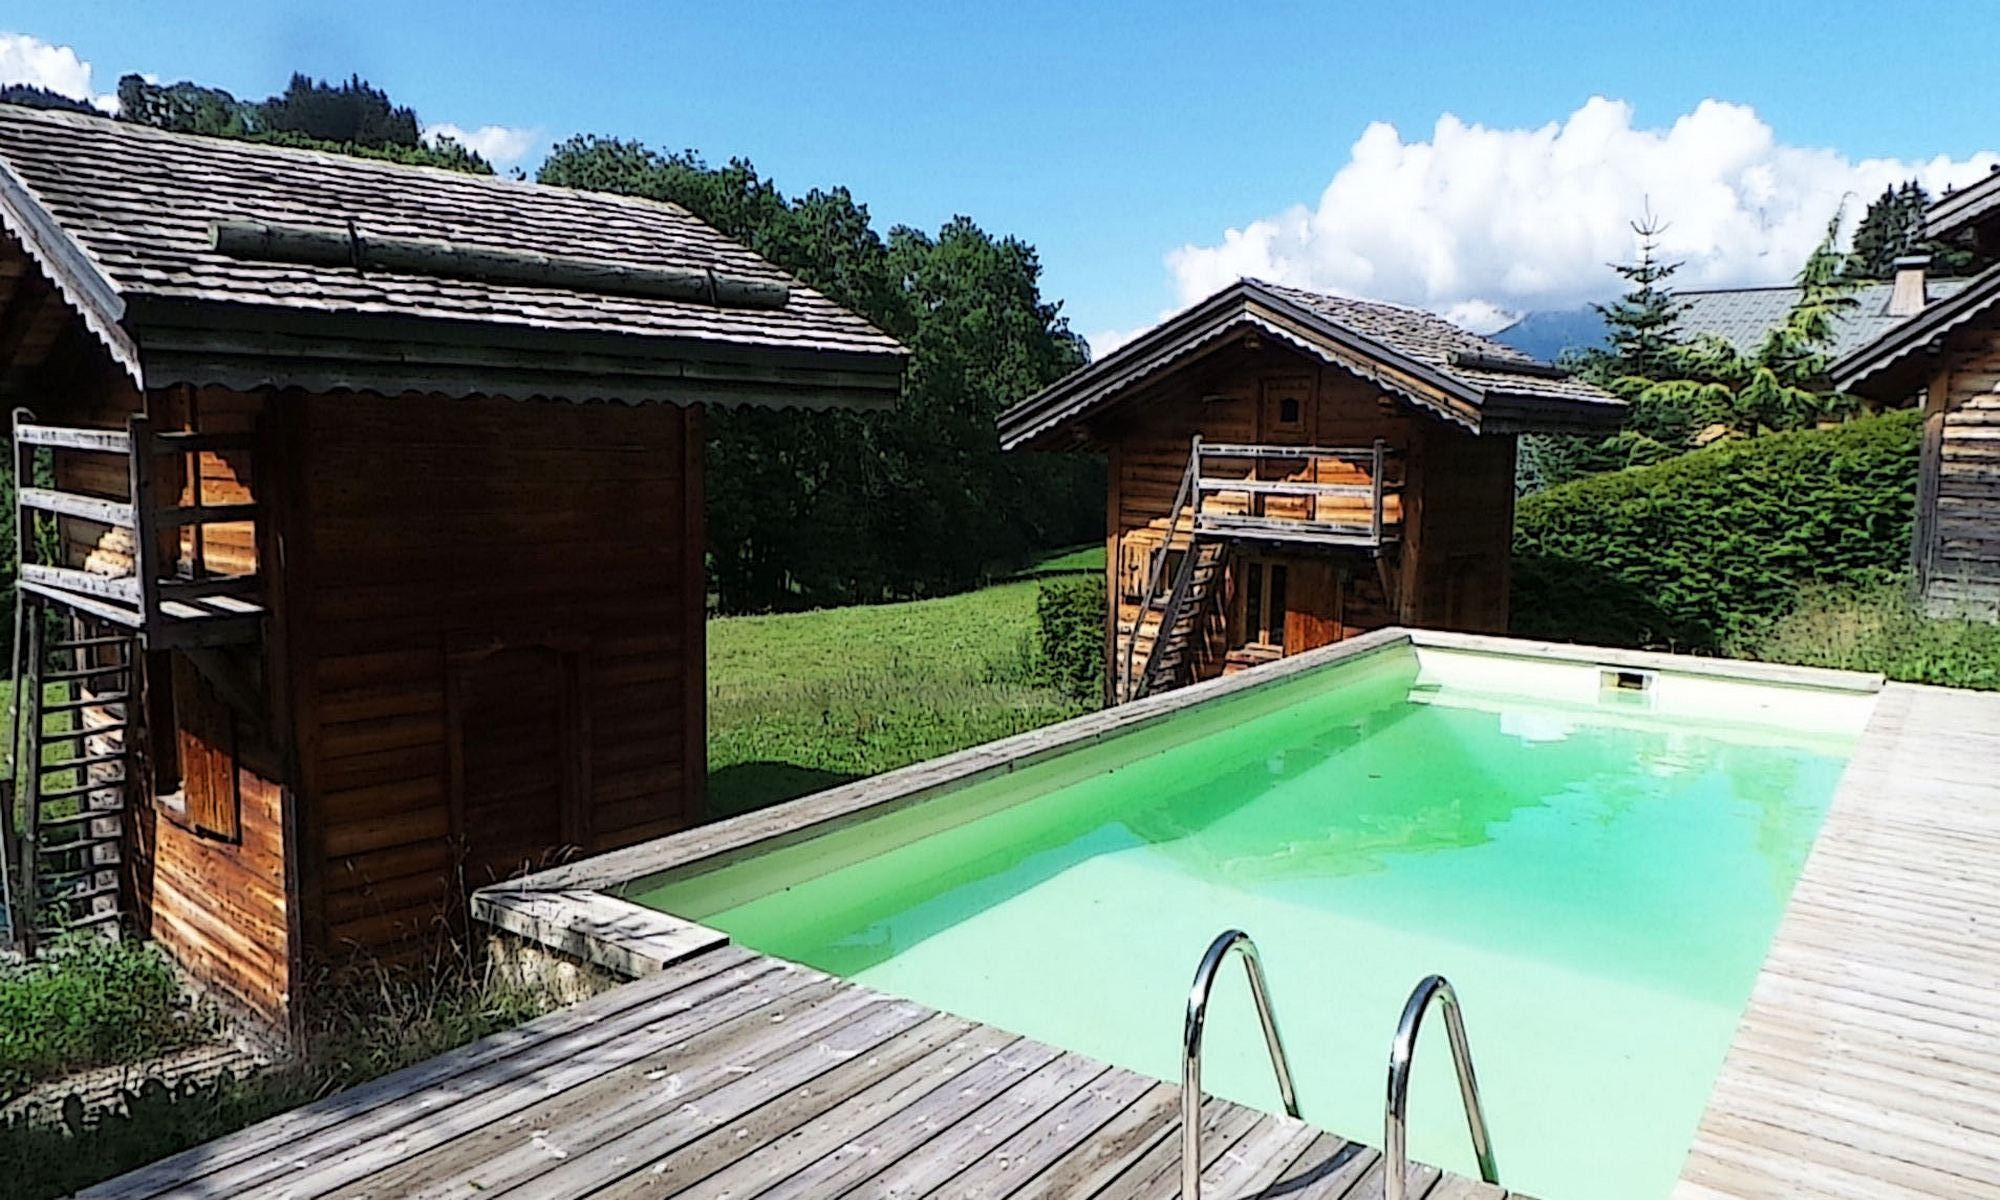 Property For Sale at Megève - La Princesse - Chalet Les Praz